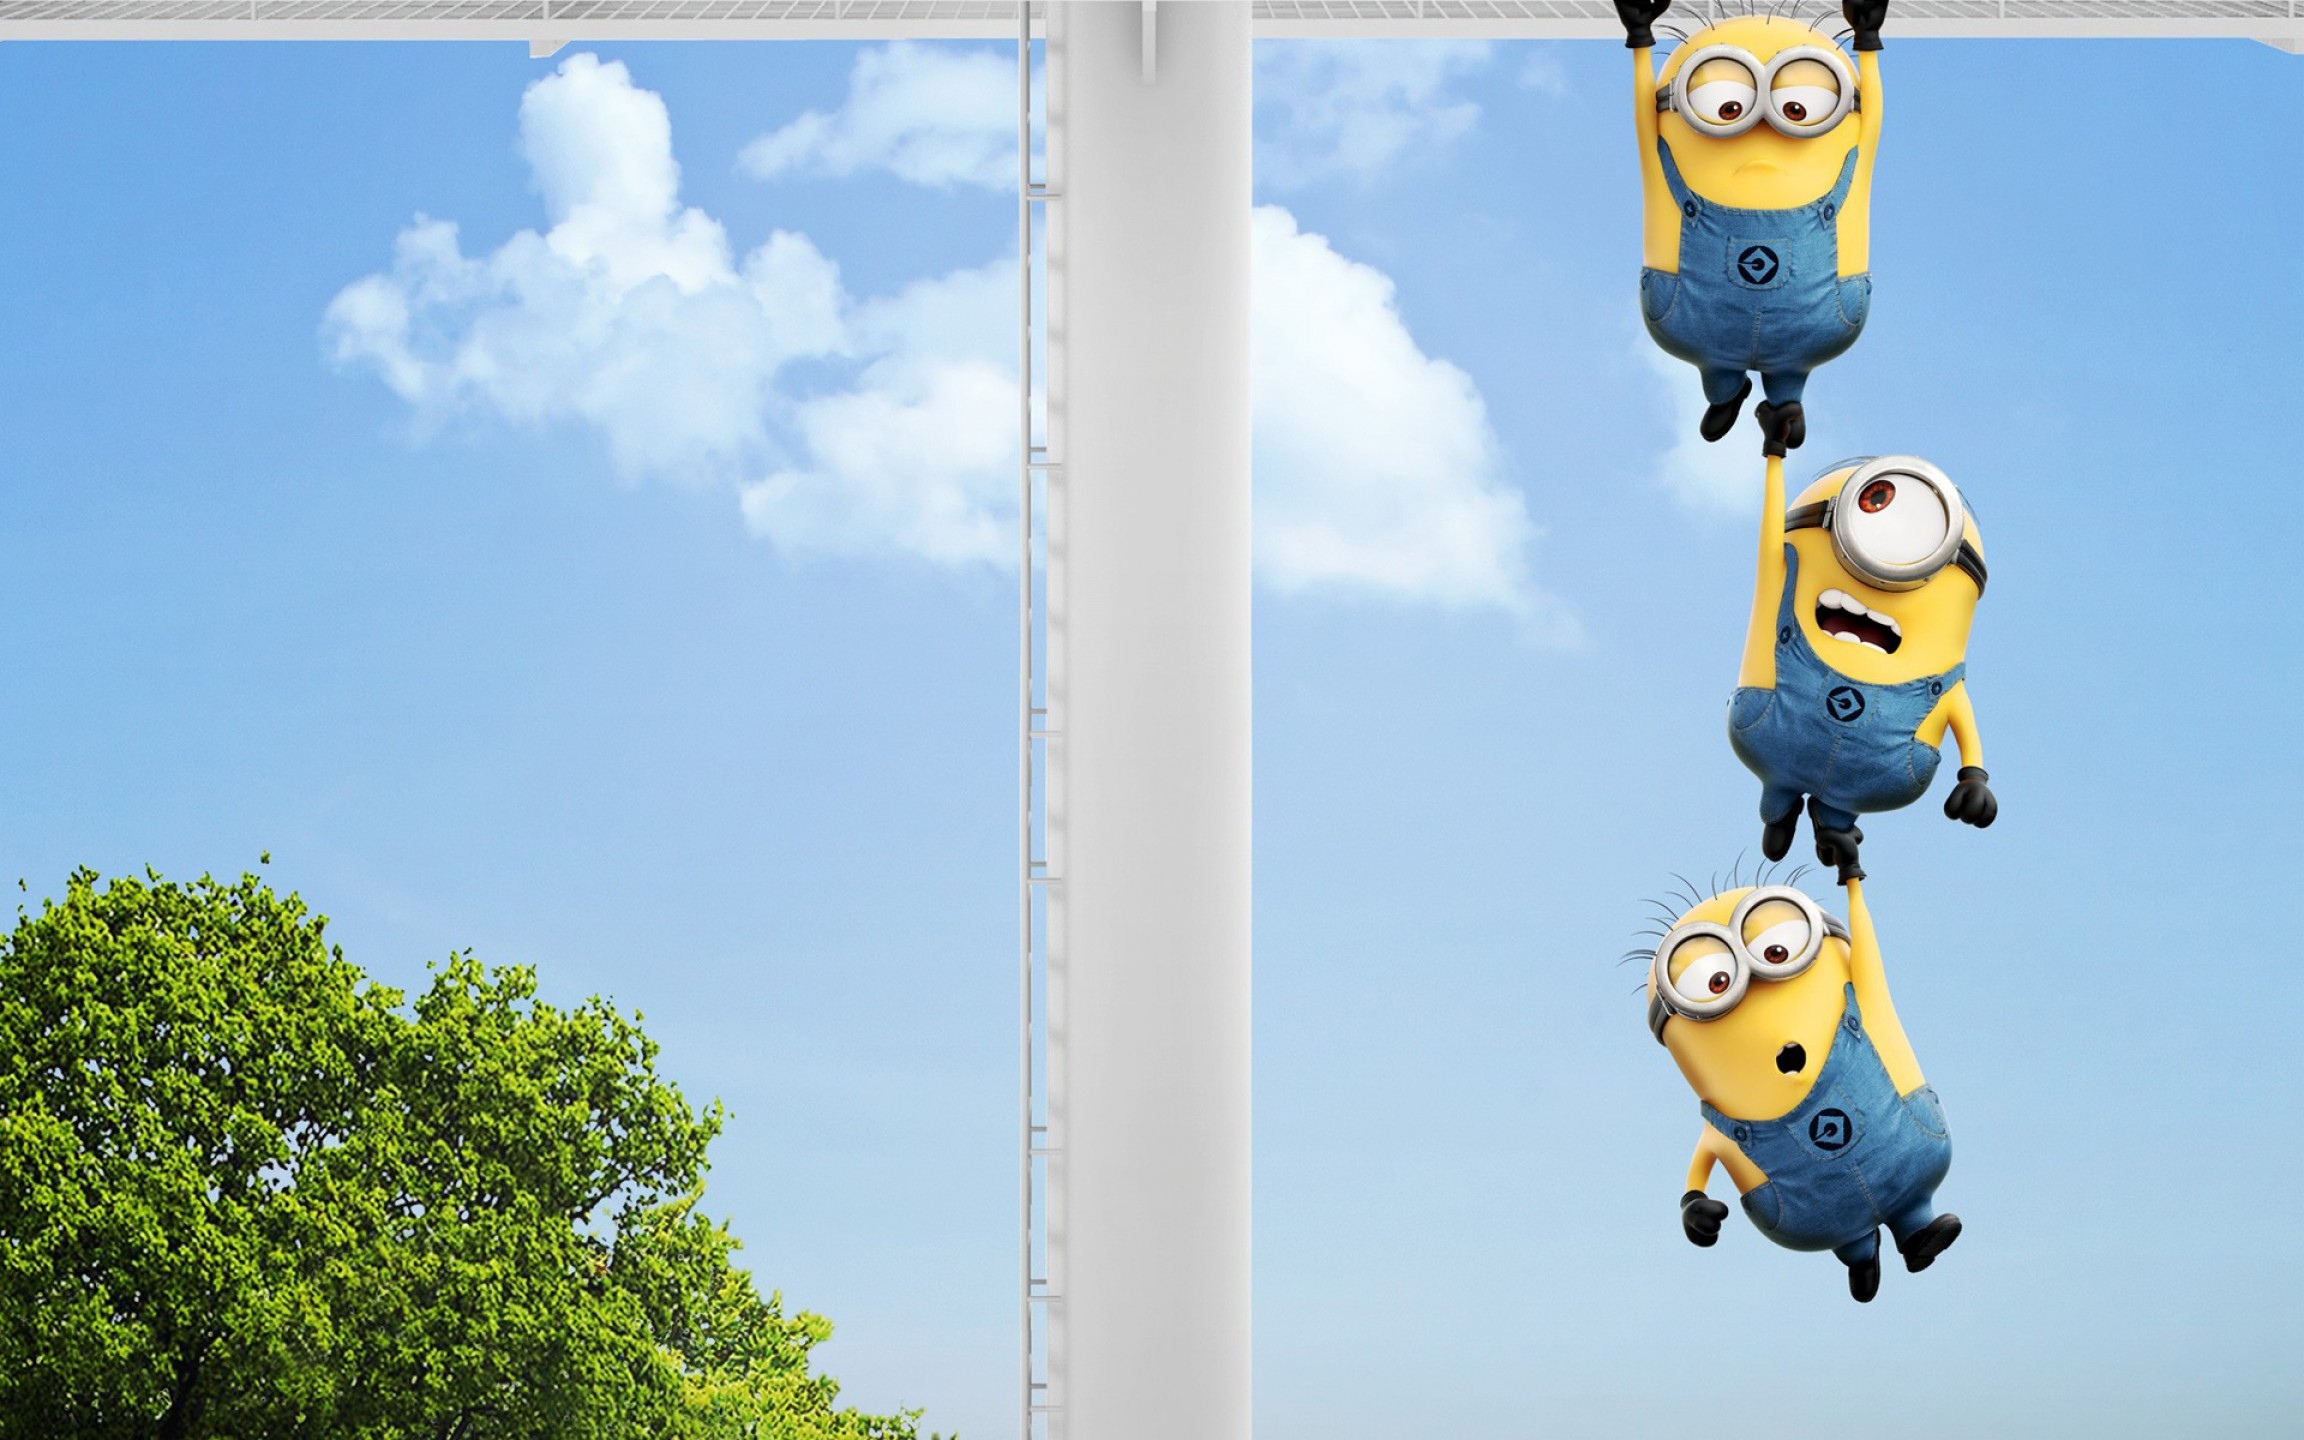 Minion From Despicable Me 2 Vector Image: Despicable Me Minions